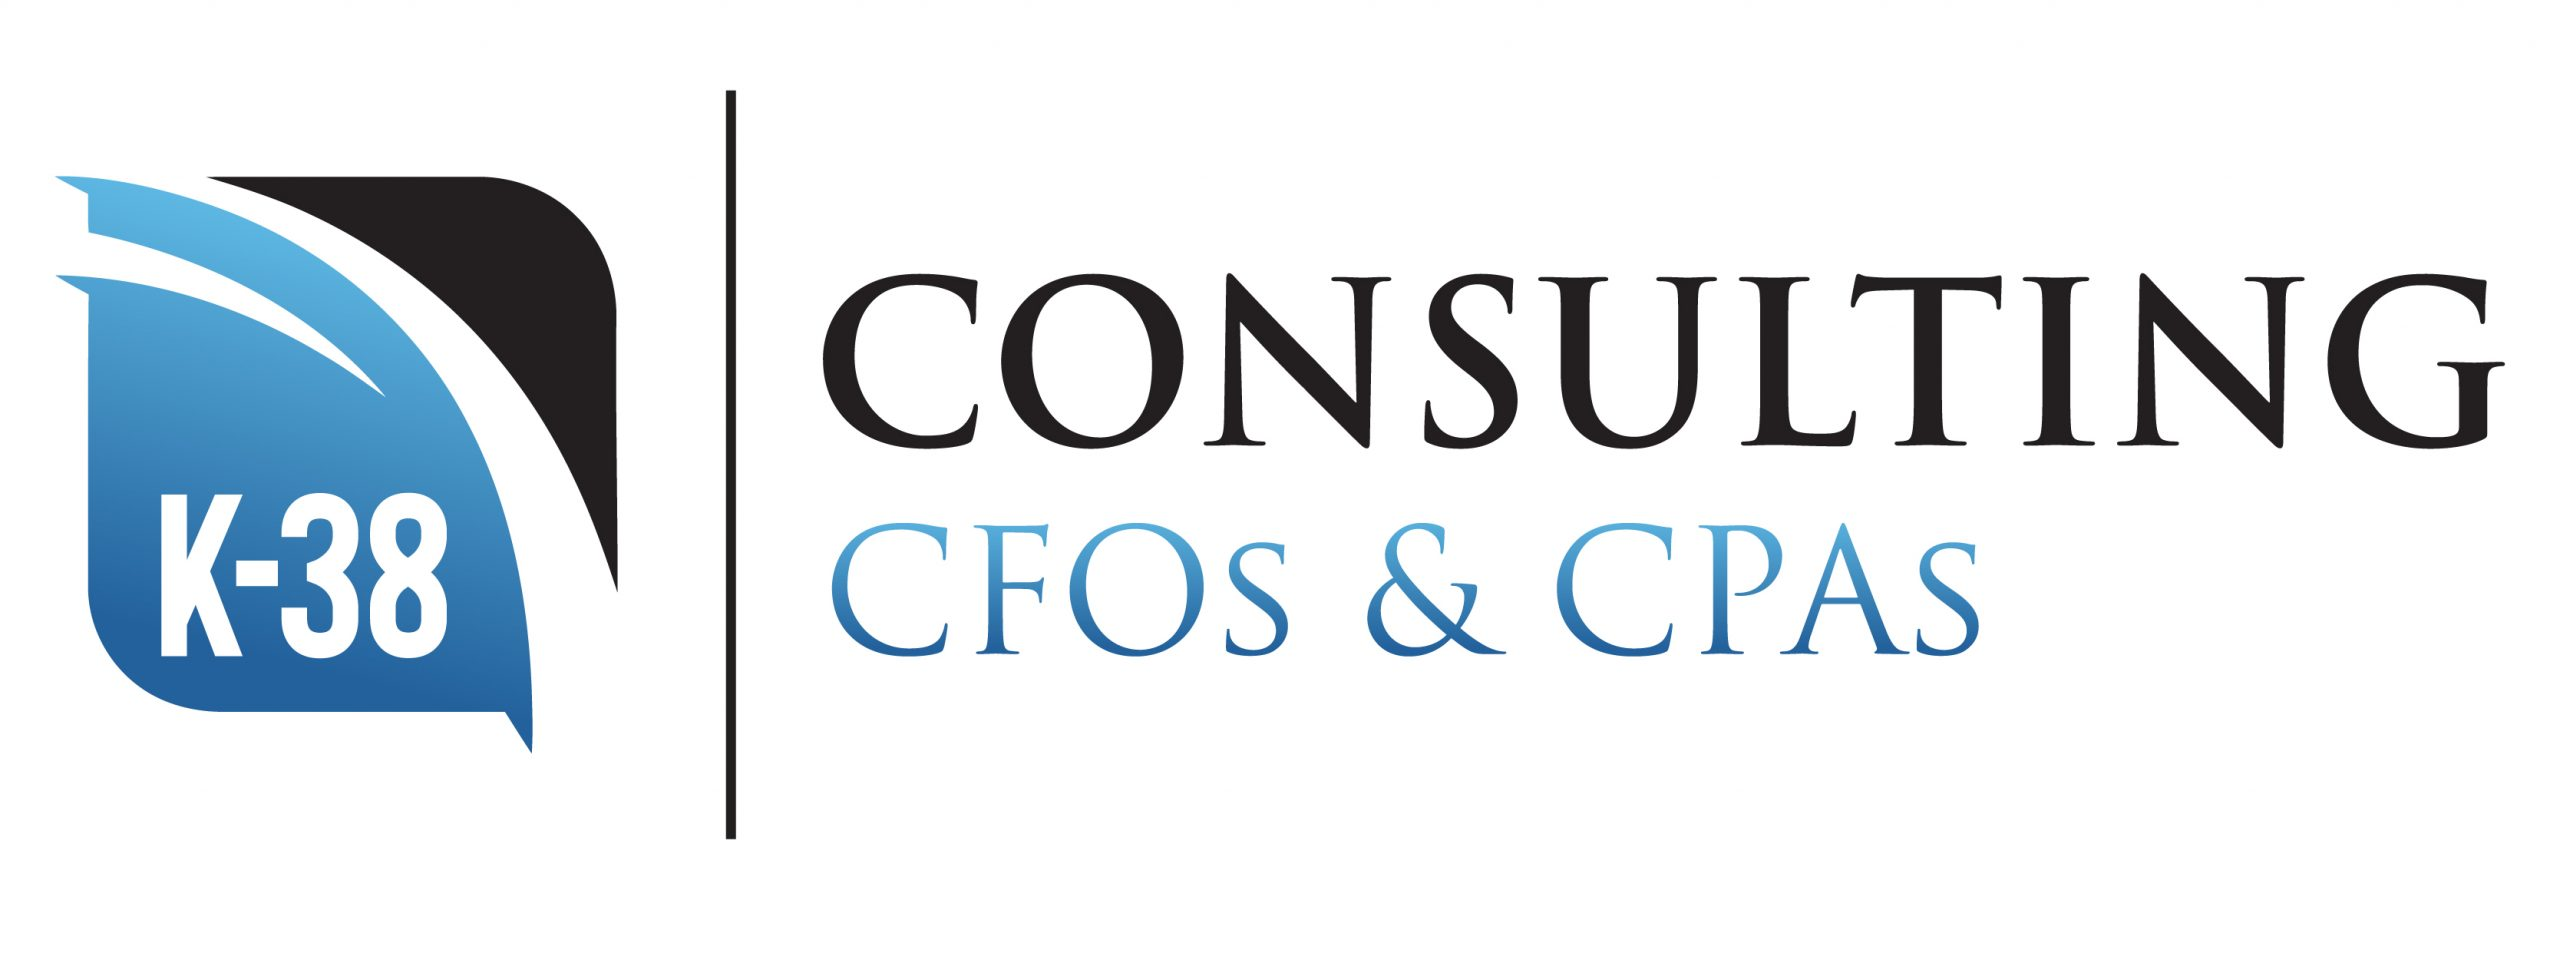 K38 Consulting Launches Fractional CFO Services to Middle Market 10